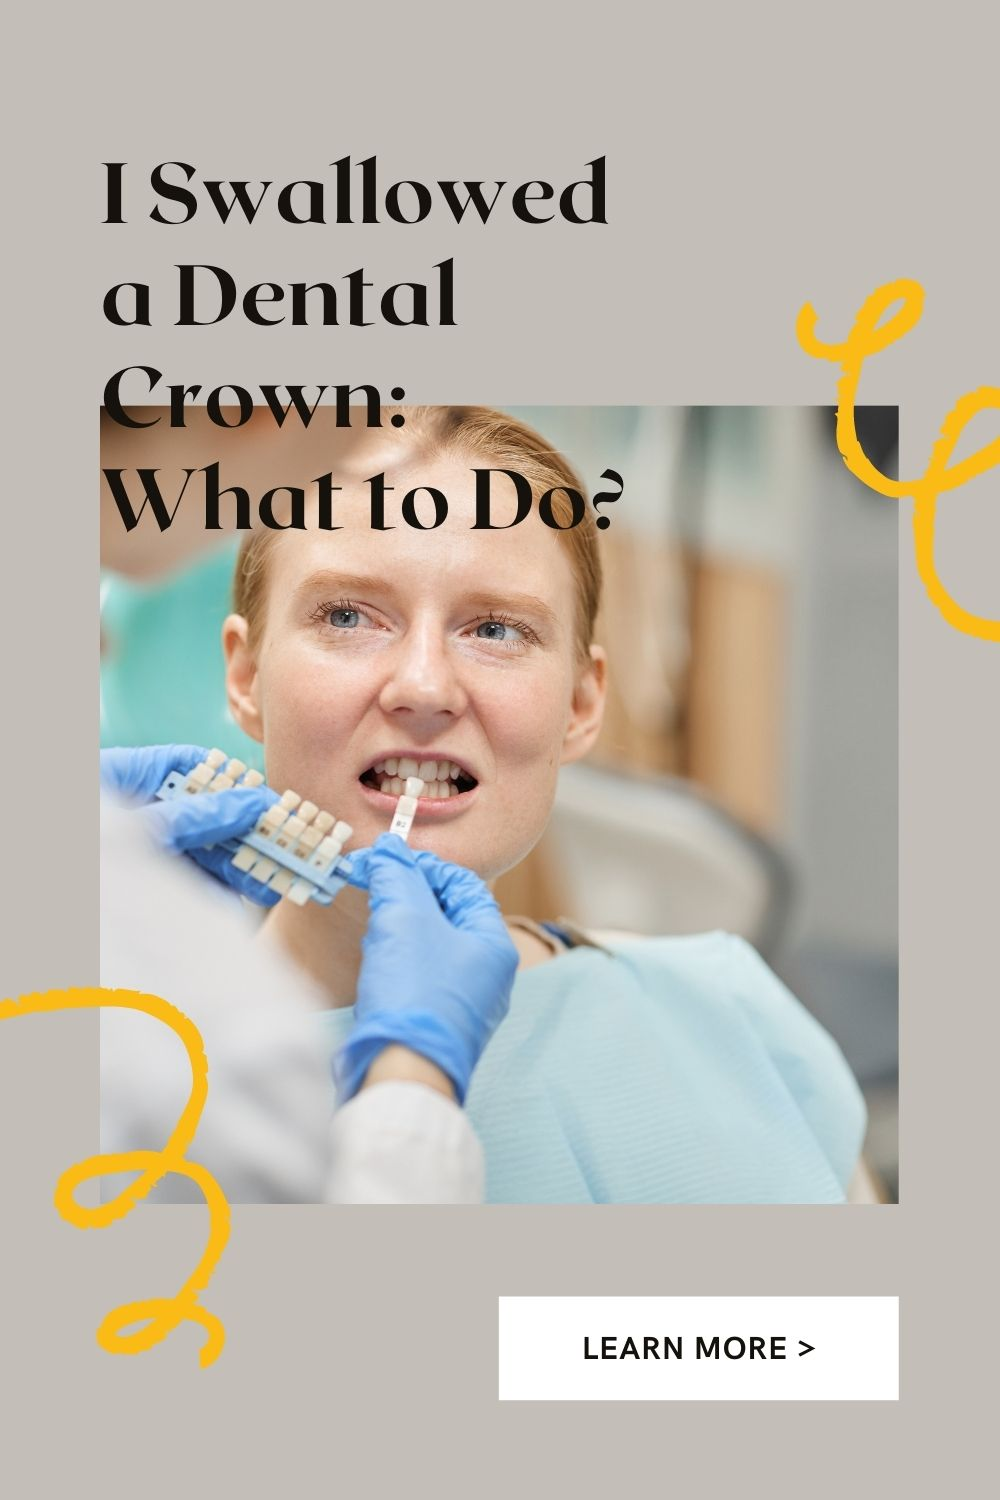 I Swallowed a Dental Crown_ What to Do_ (1)